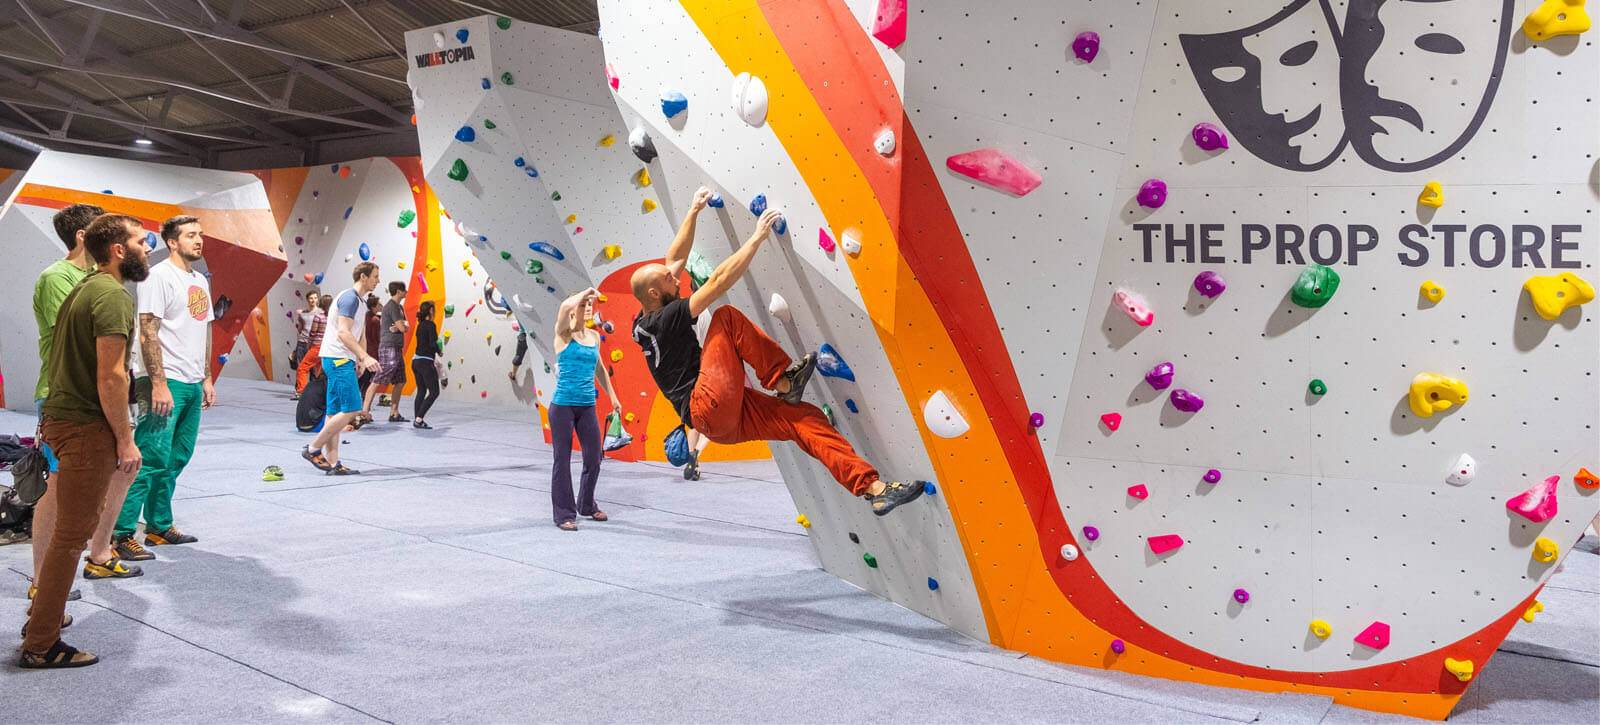 The Prop Store climbing centre